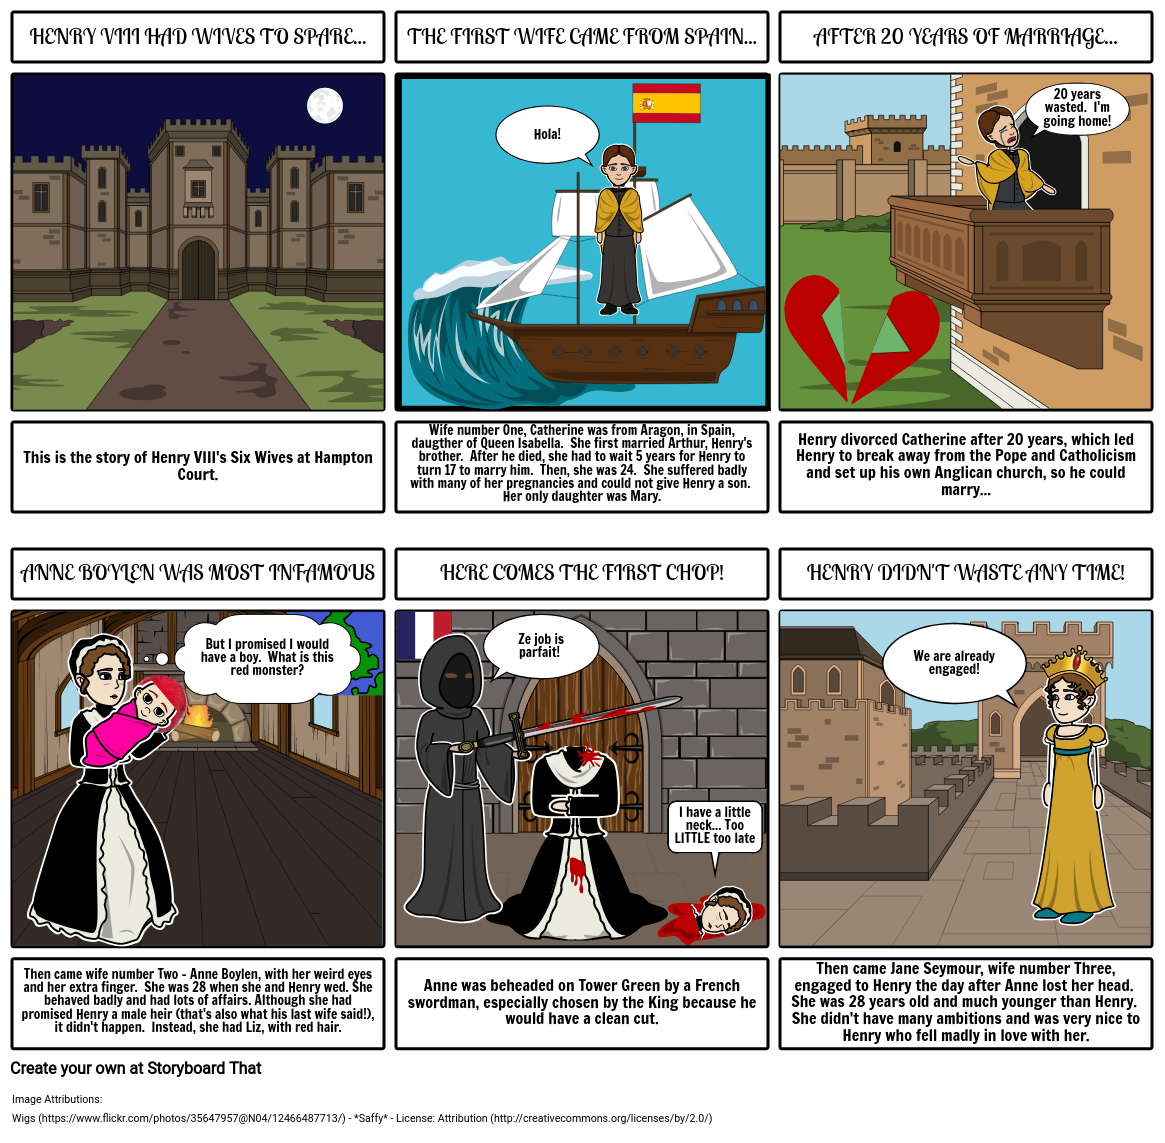 6 wives of Henry VIII